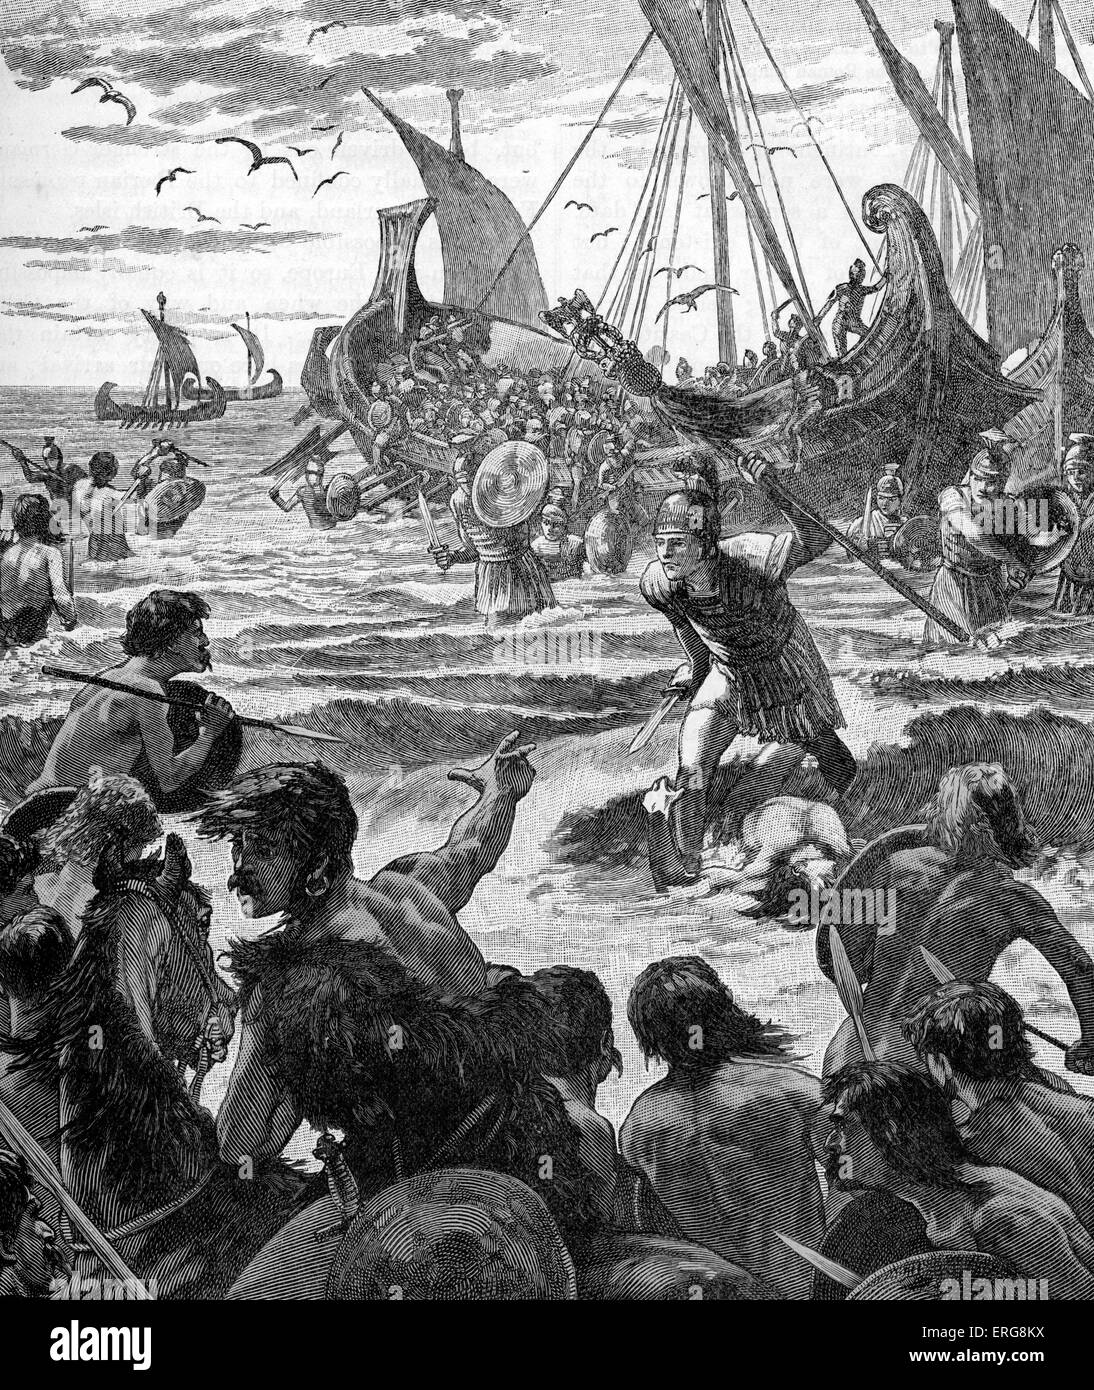 Roman invasion of Britain - early 20th century illustration. Landing on the coast of Kent. Invasion commanded by - Stock Image